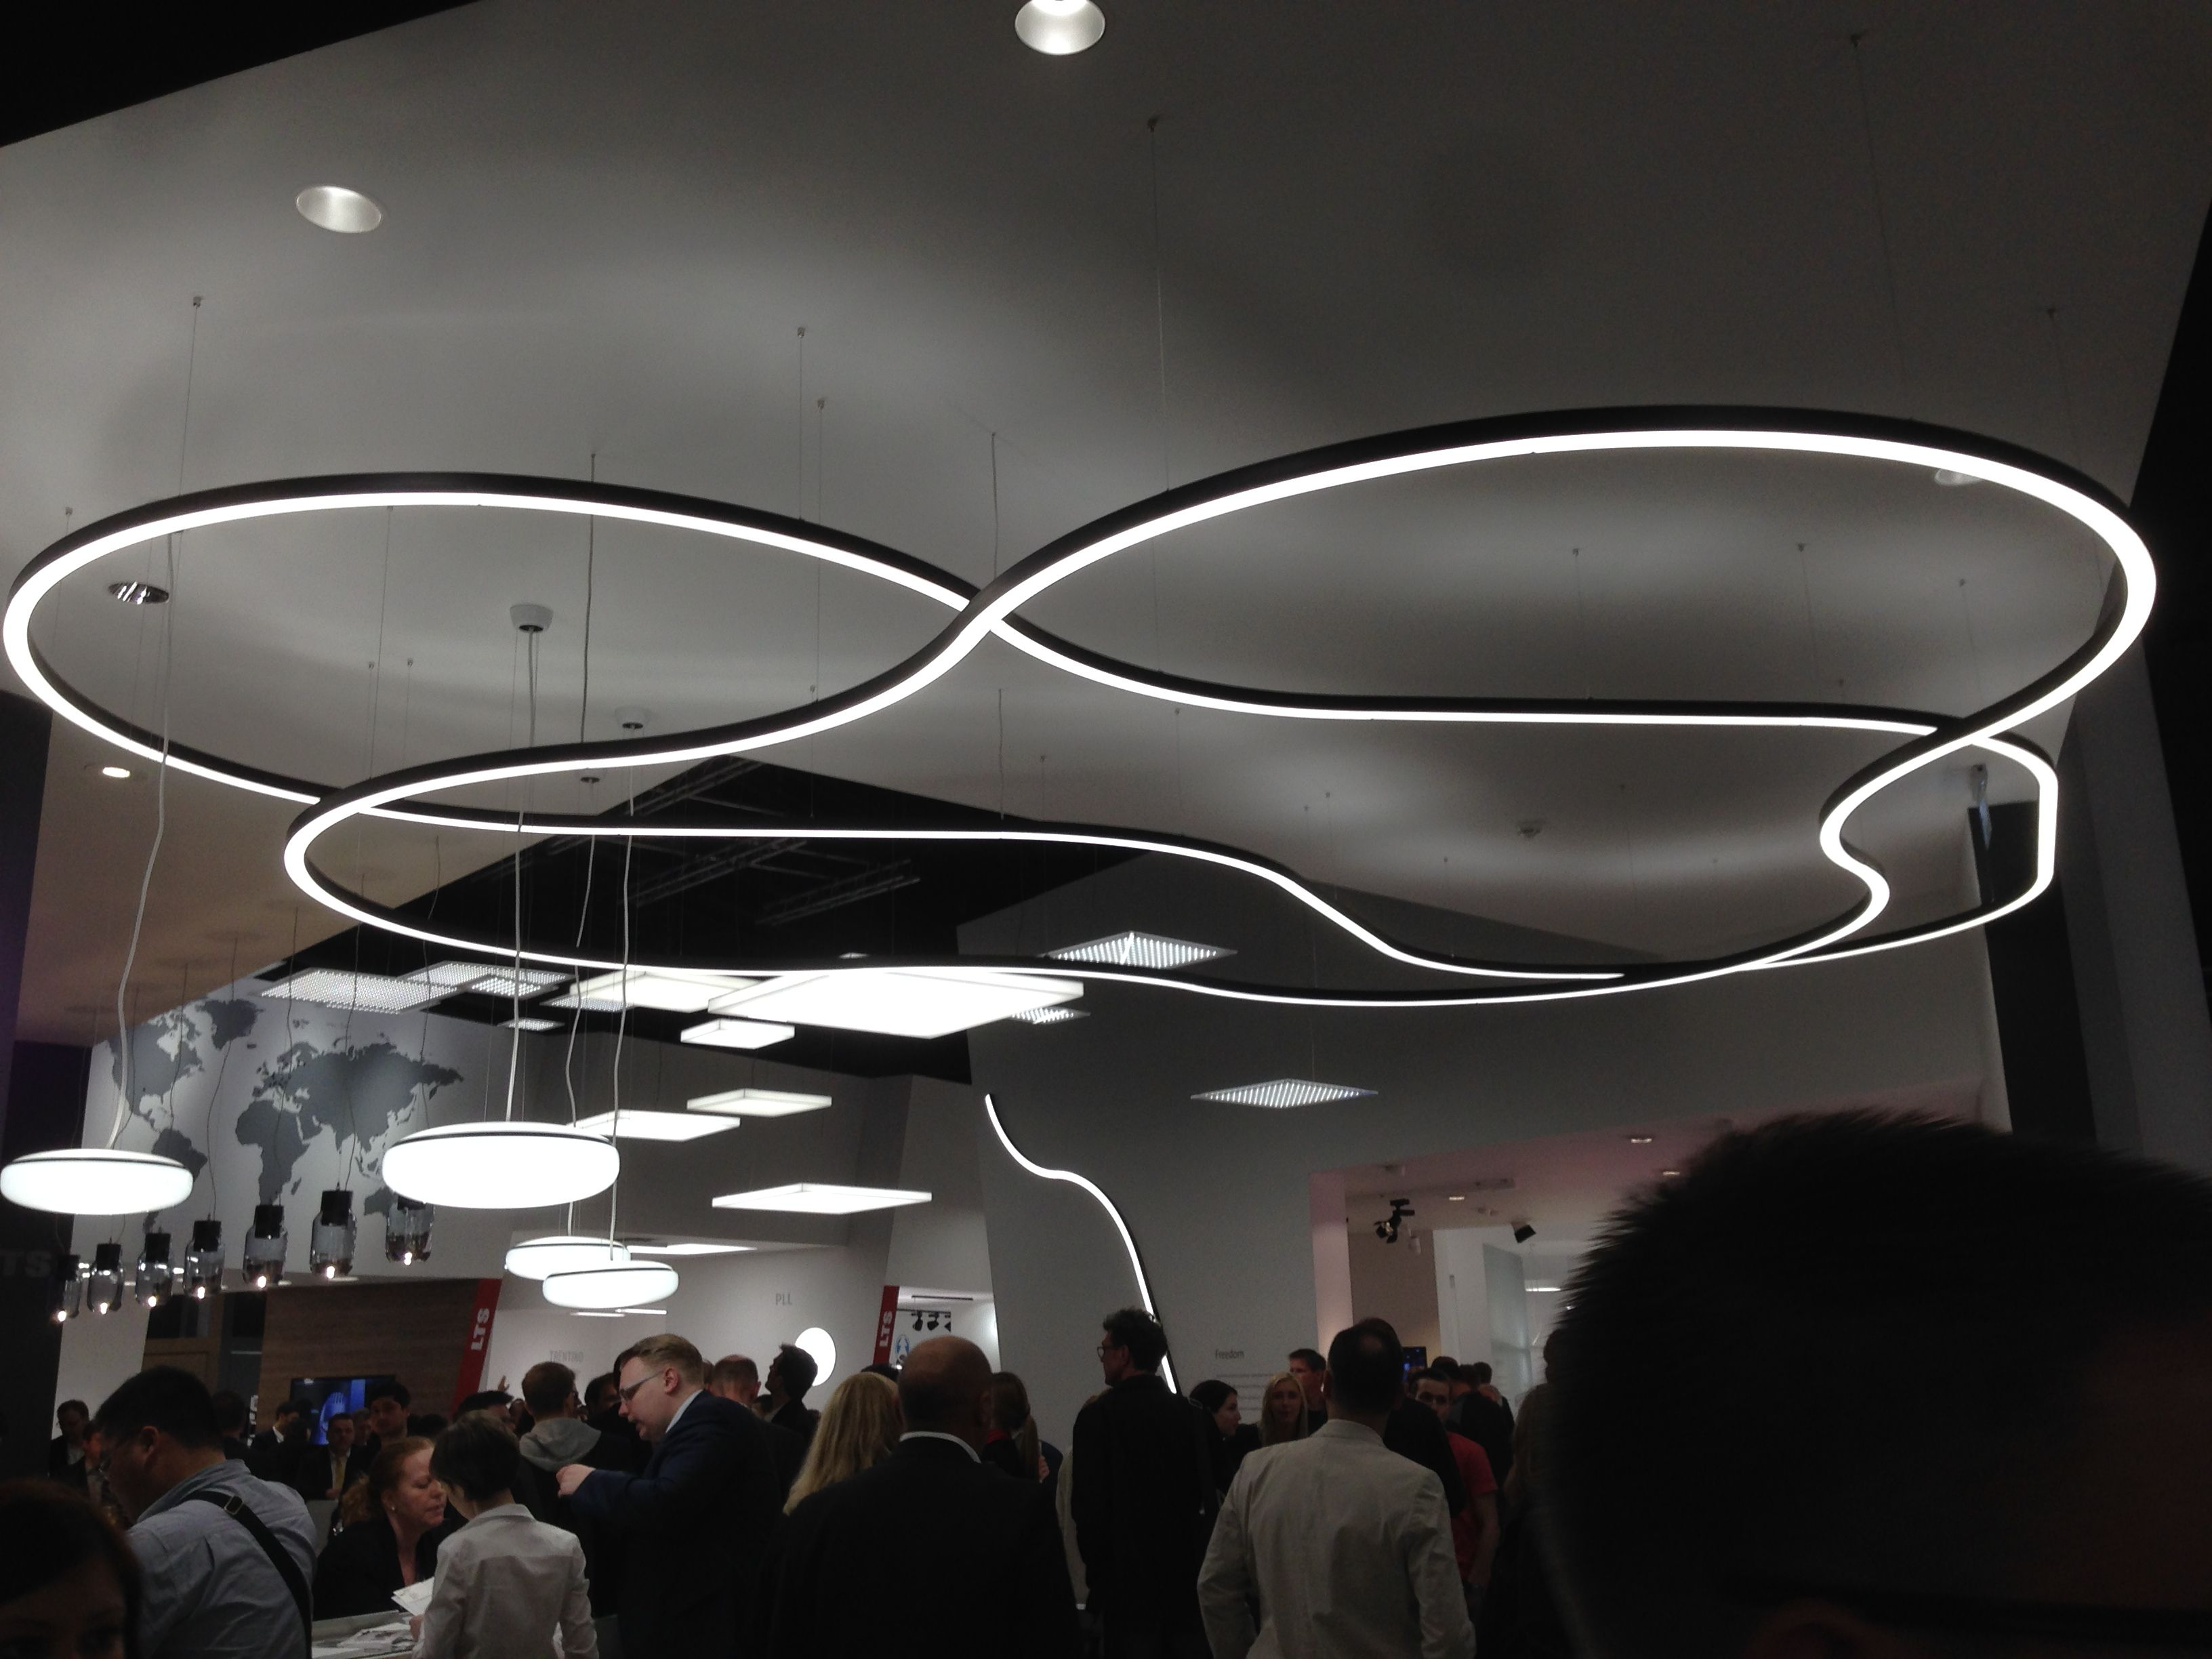 Xenon Ceiling Lights : Xal curve the latest fixture from xenon architectural